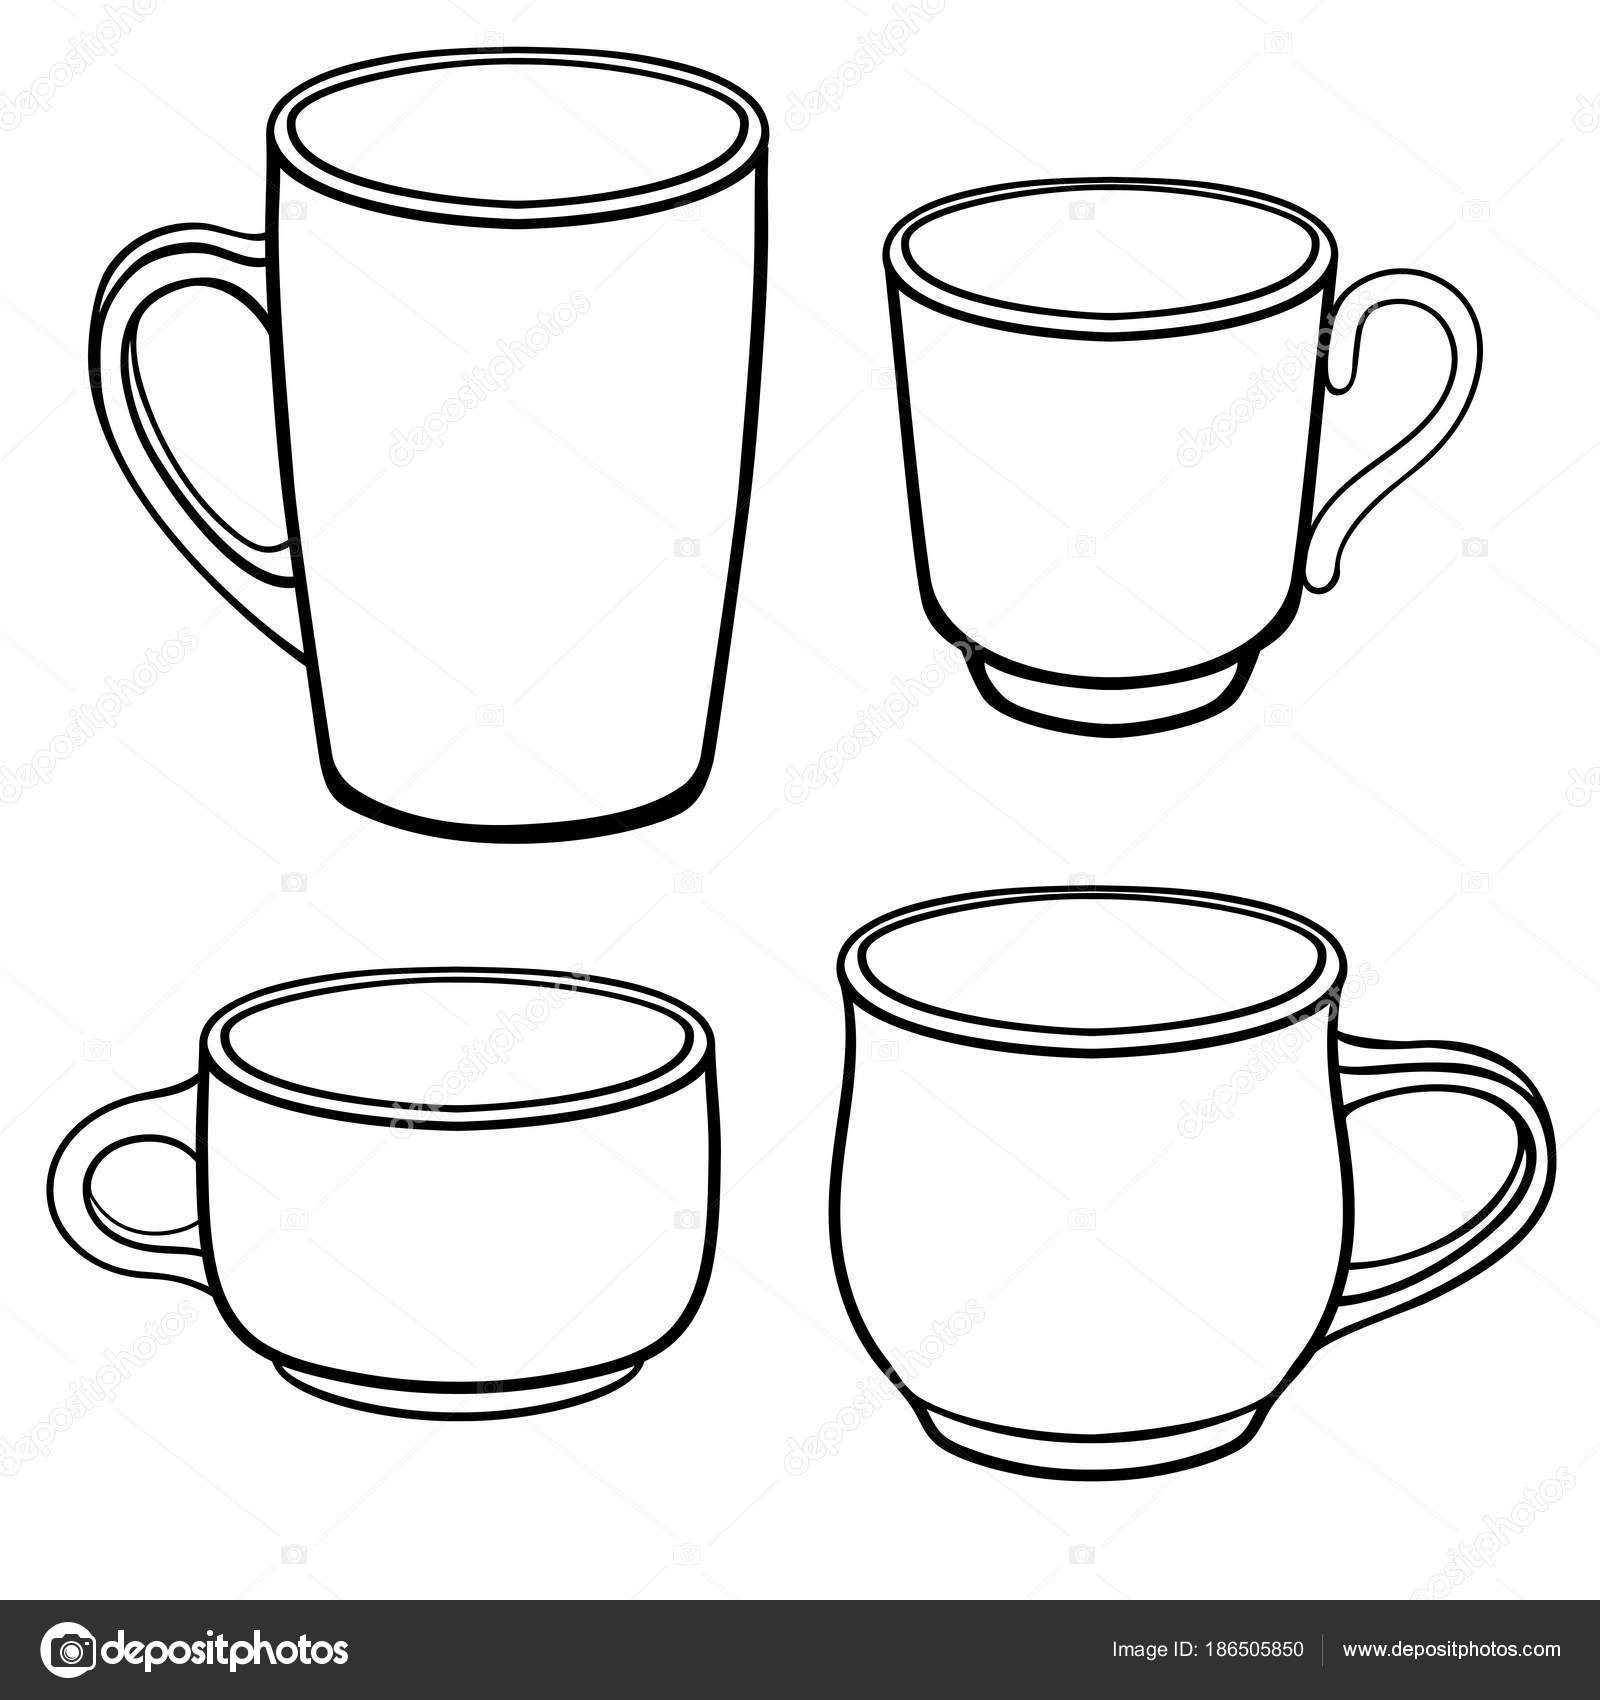 Mugs clipart line drawing. Cups coffee different shapes